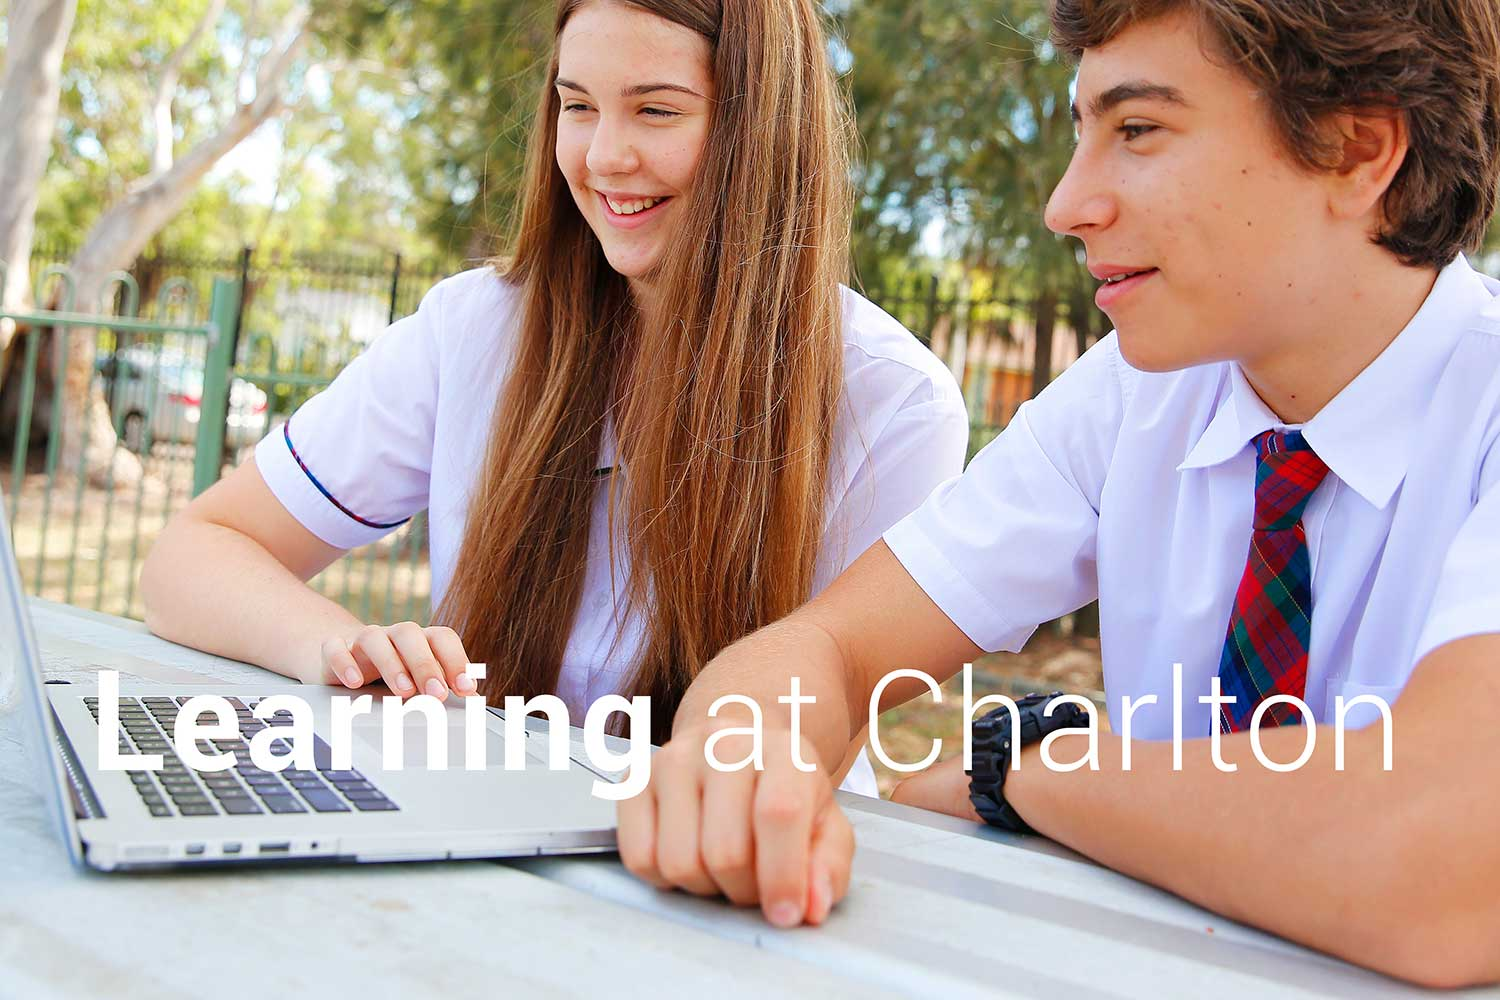 charlton christian college learning